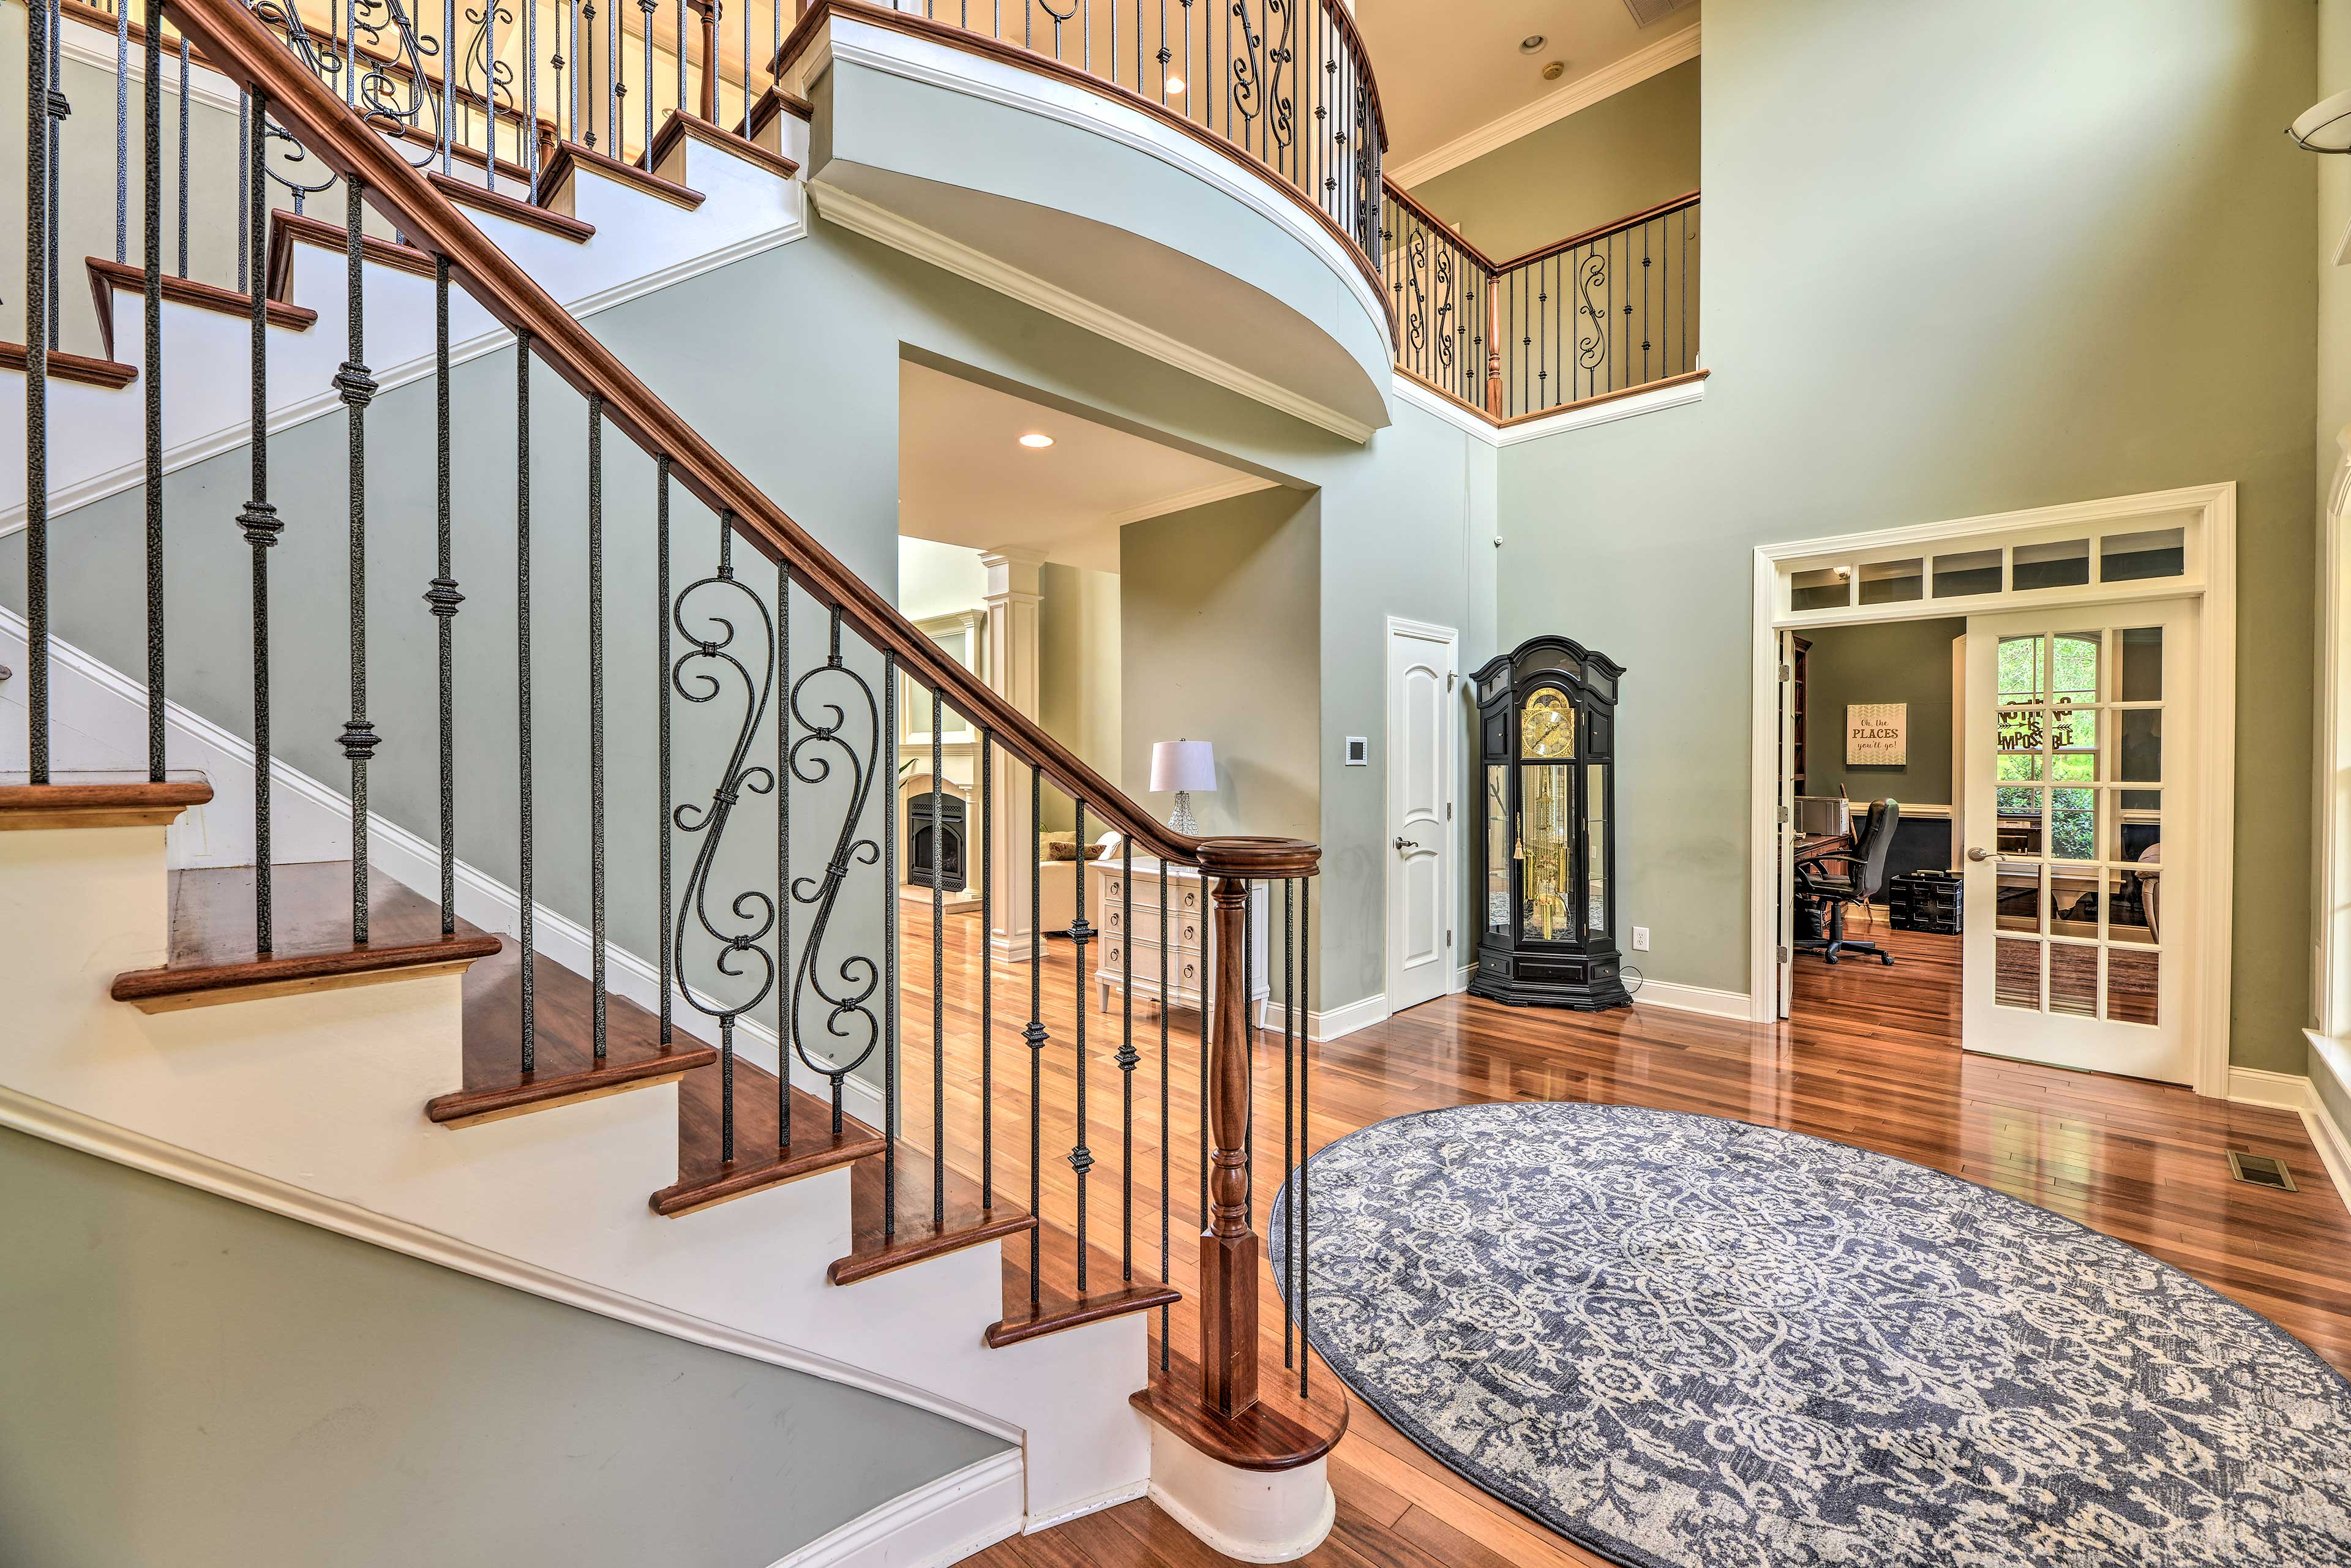 Enter the home and enjoy a grand staircase and vaulted ceilings.